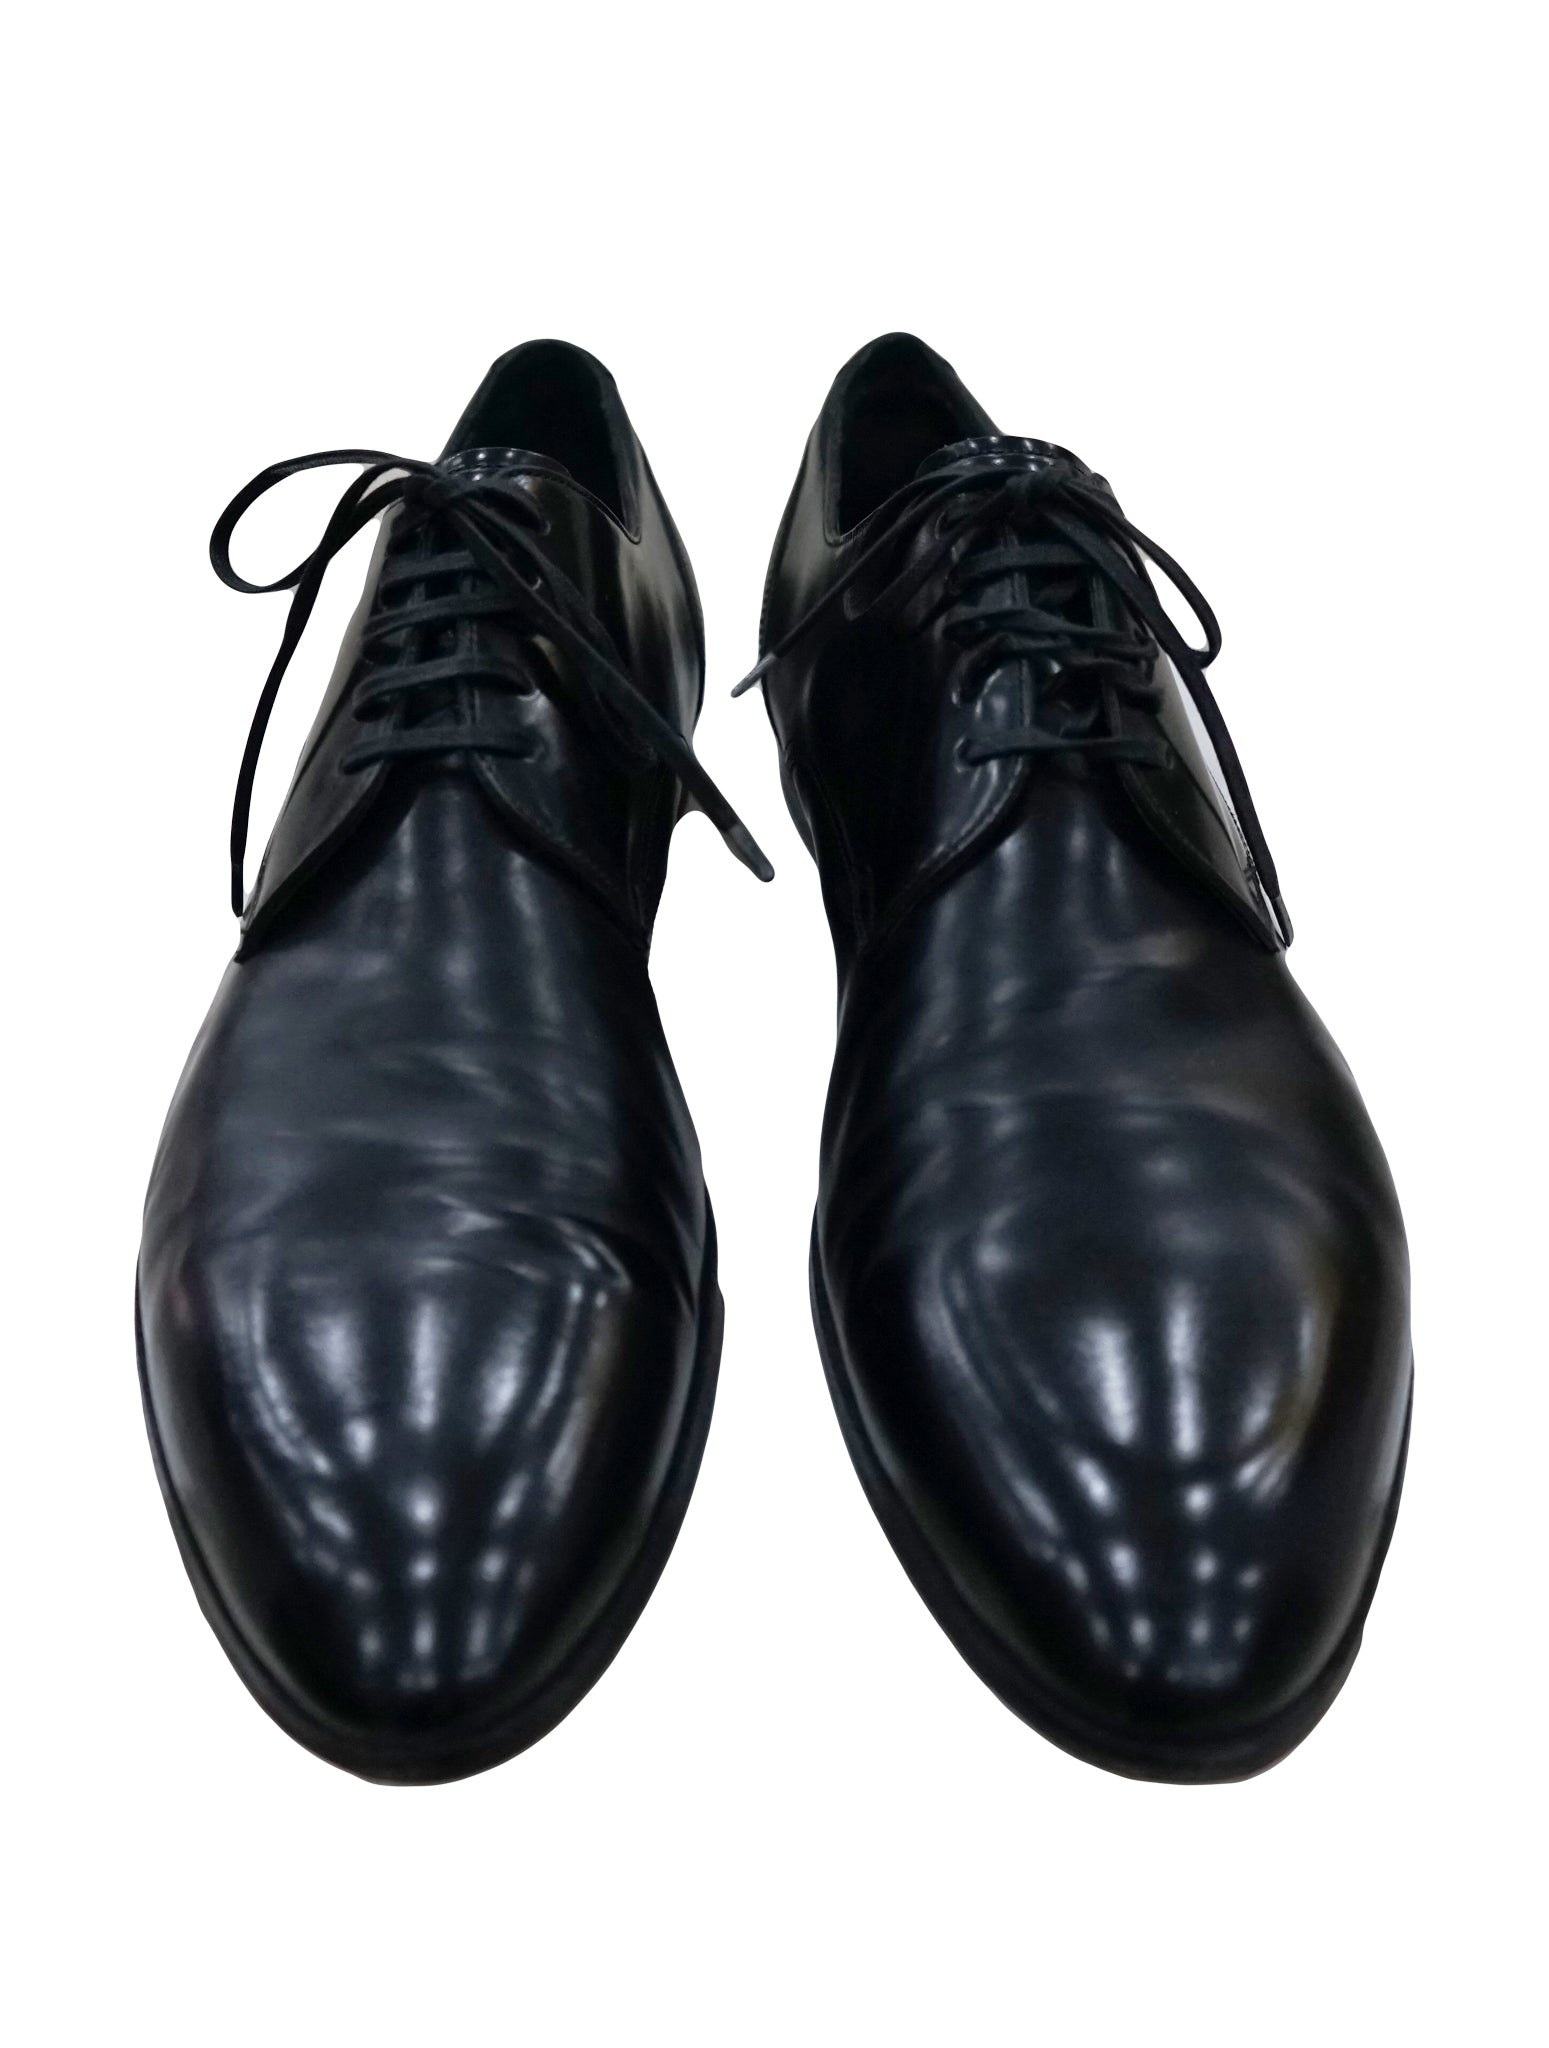 BLACK LEATHER POINTED TOE LACE UP SHOES